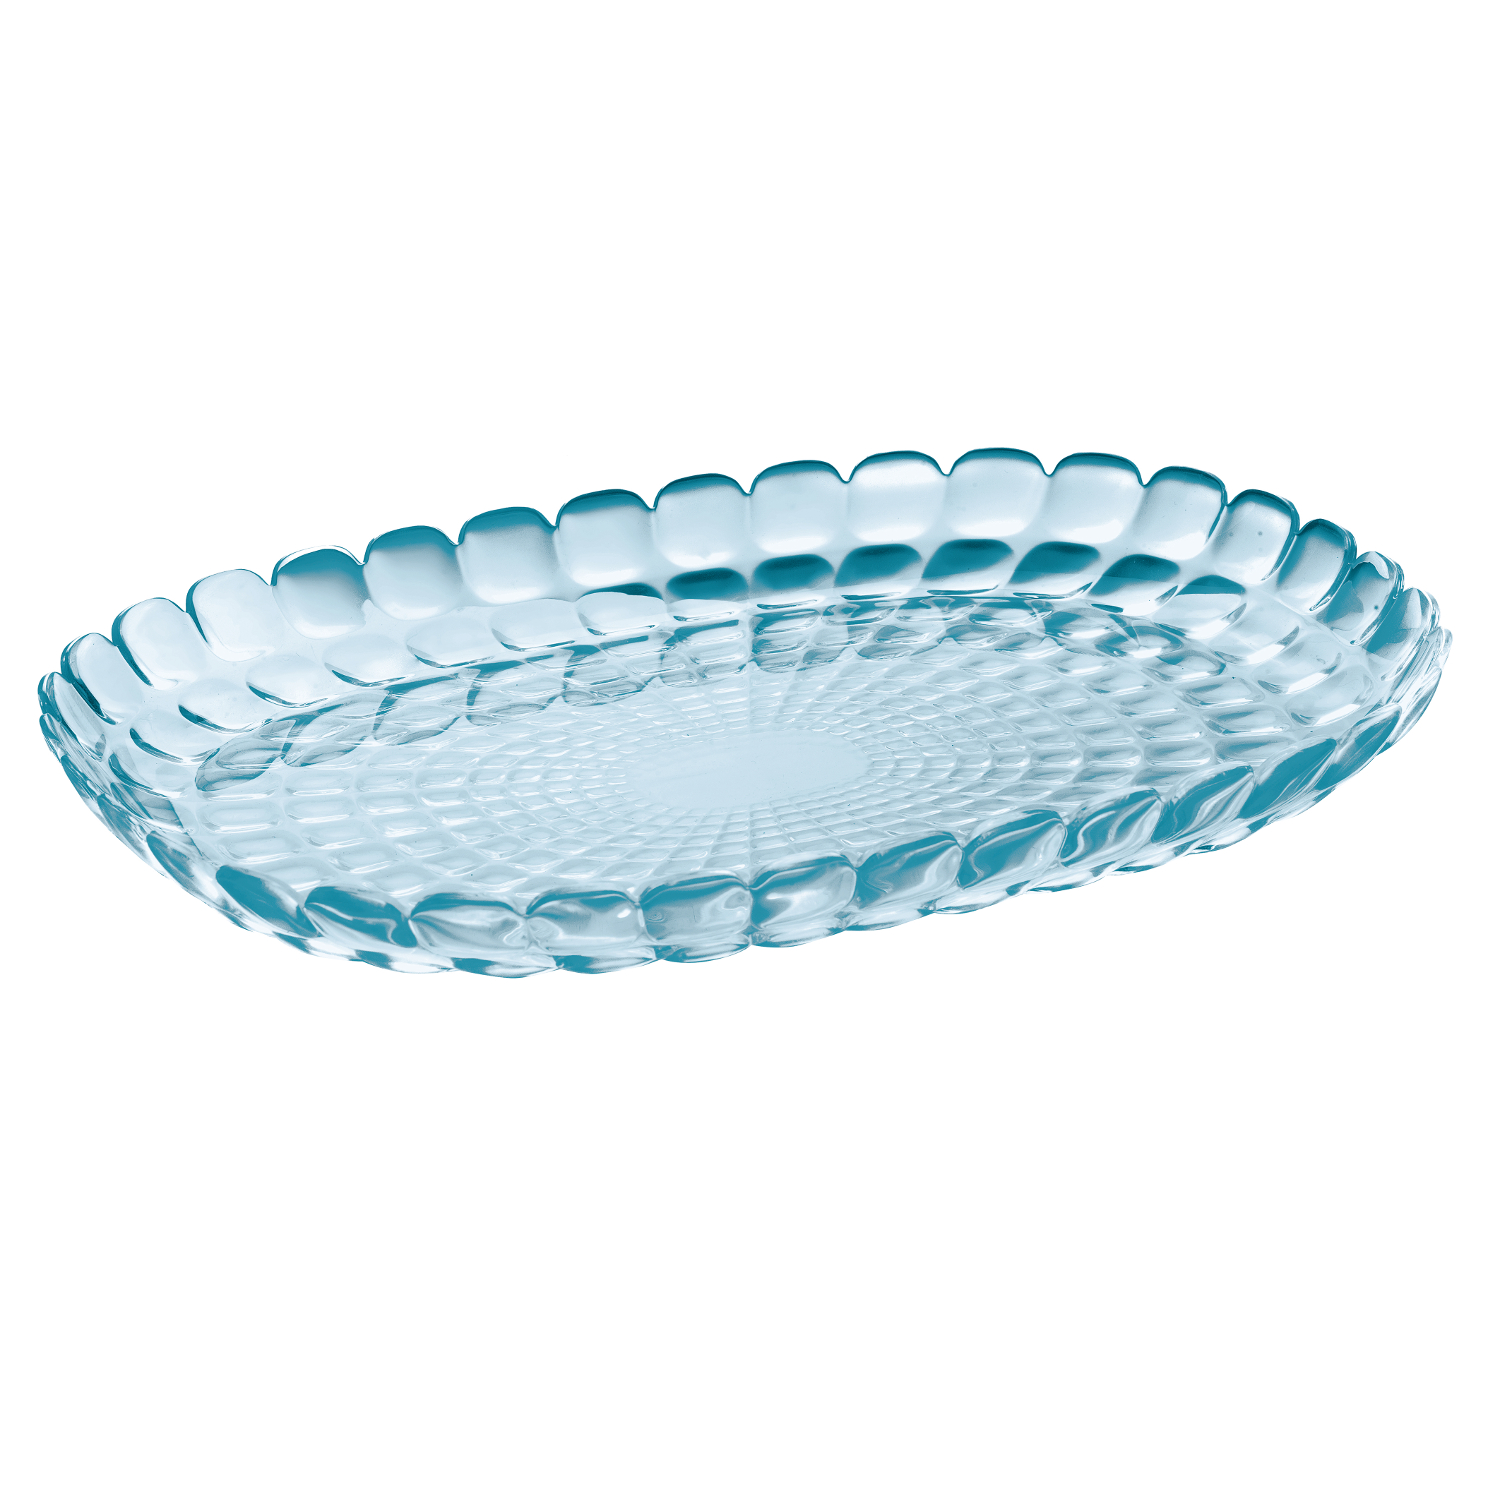 Guzzini Tiffany Sea Blue Acrylic Large Tray